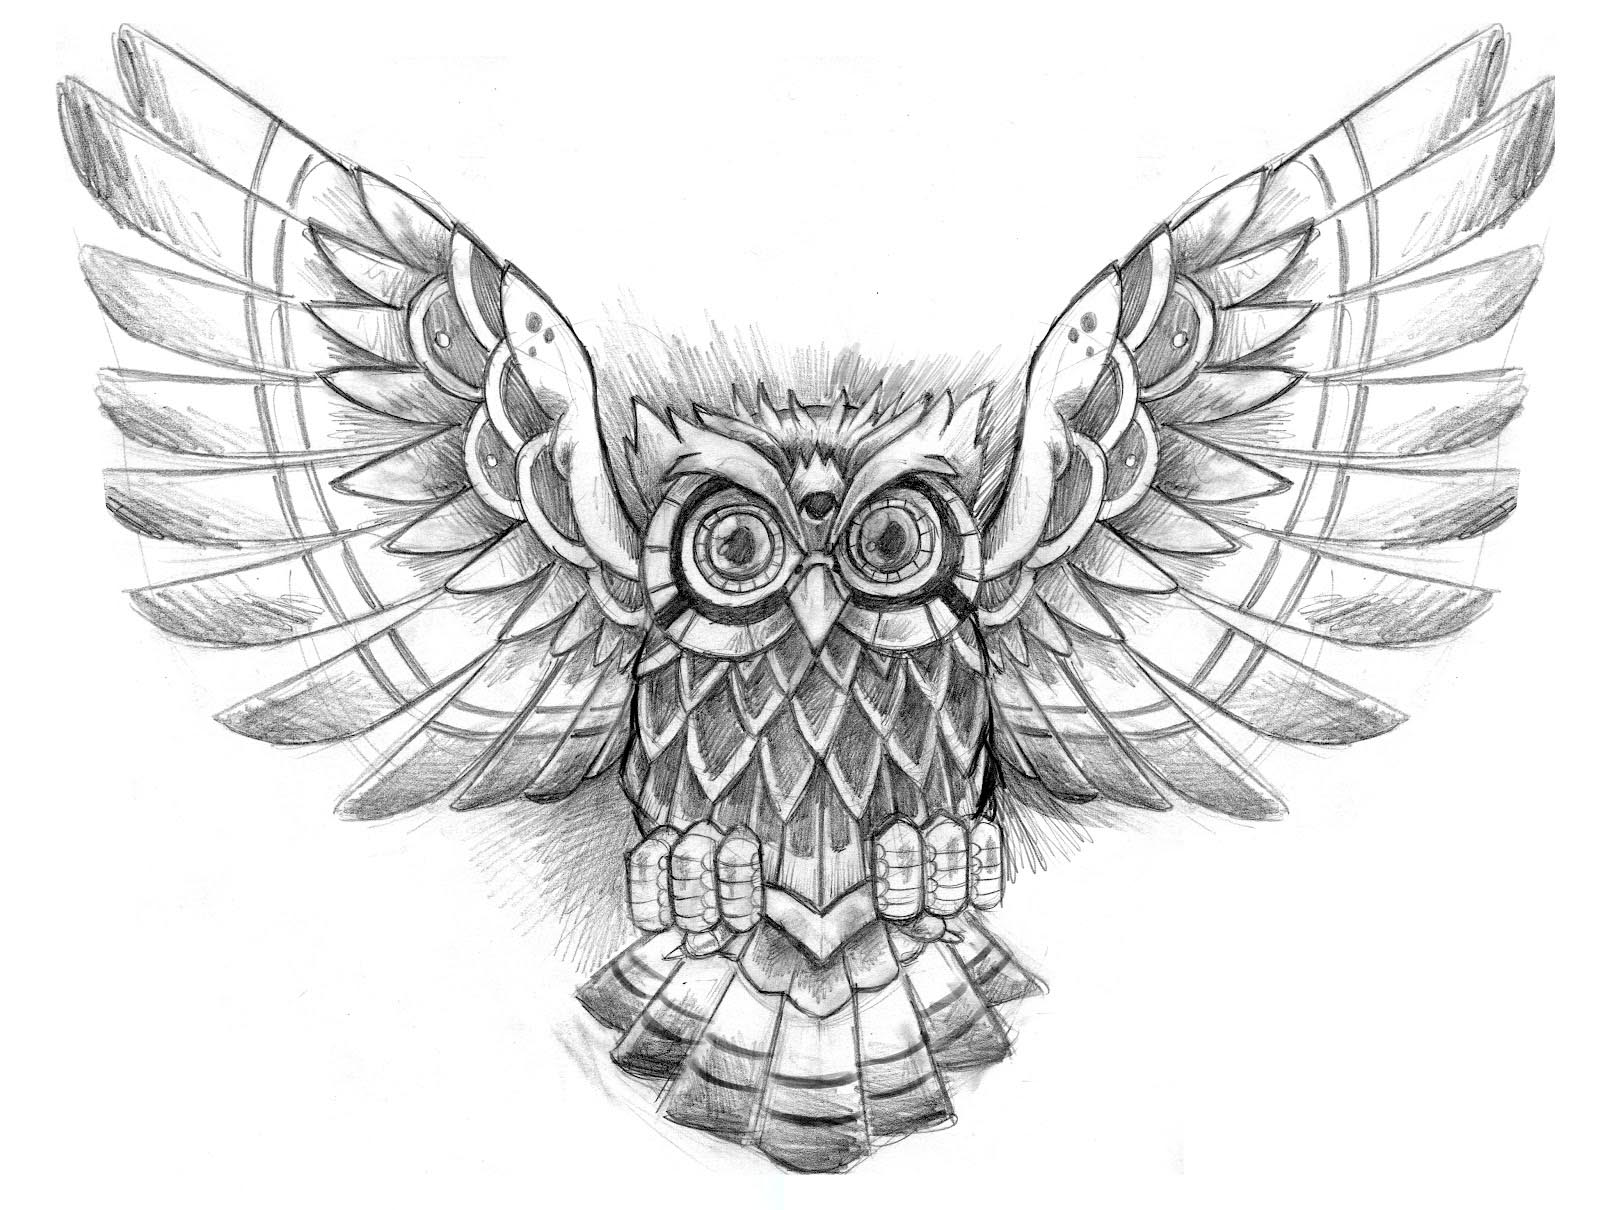 flying owl pencil drawings Owl Drawings Black and White flying owl pencil drawings photo 26